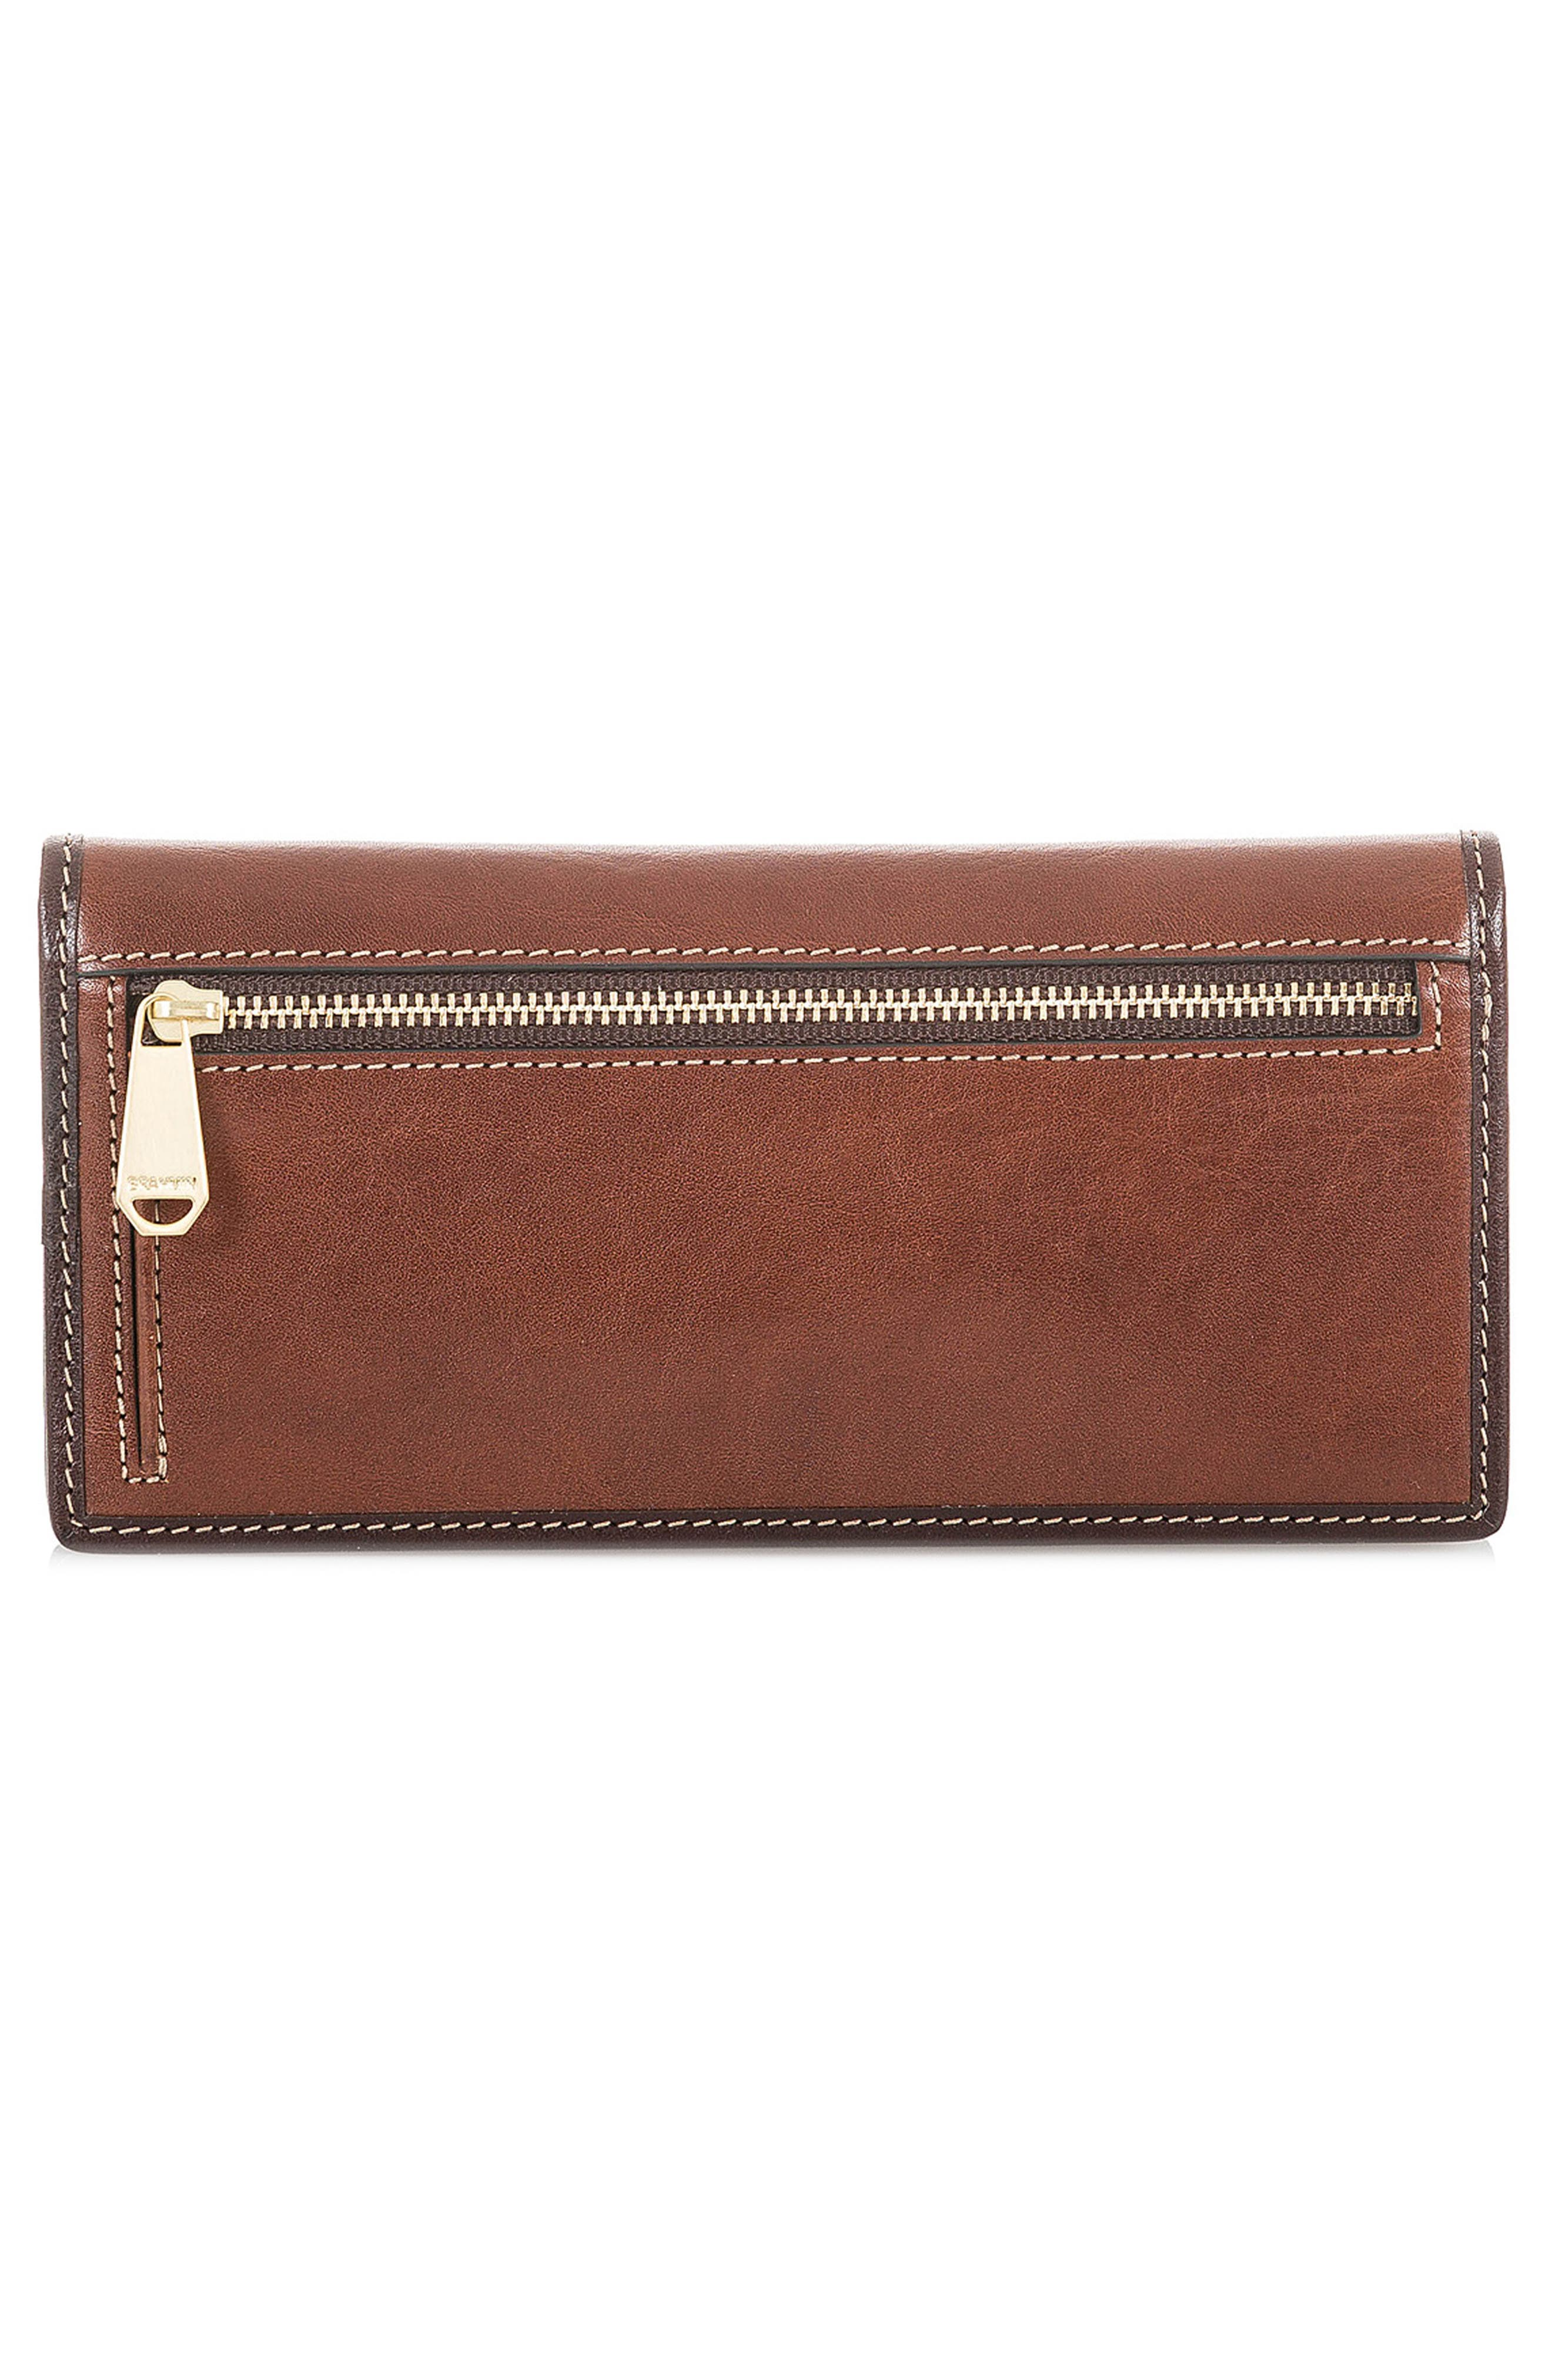 Ady Leather Wallet,                             Alternate thumbnail 3, color,                             200